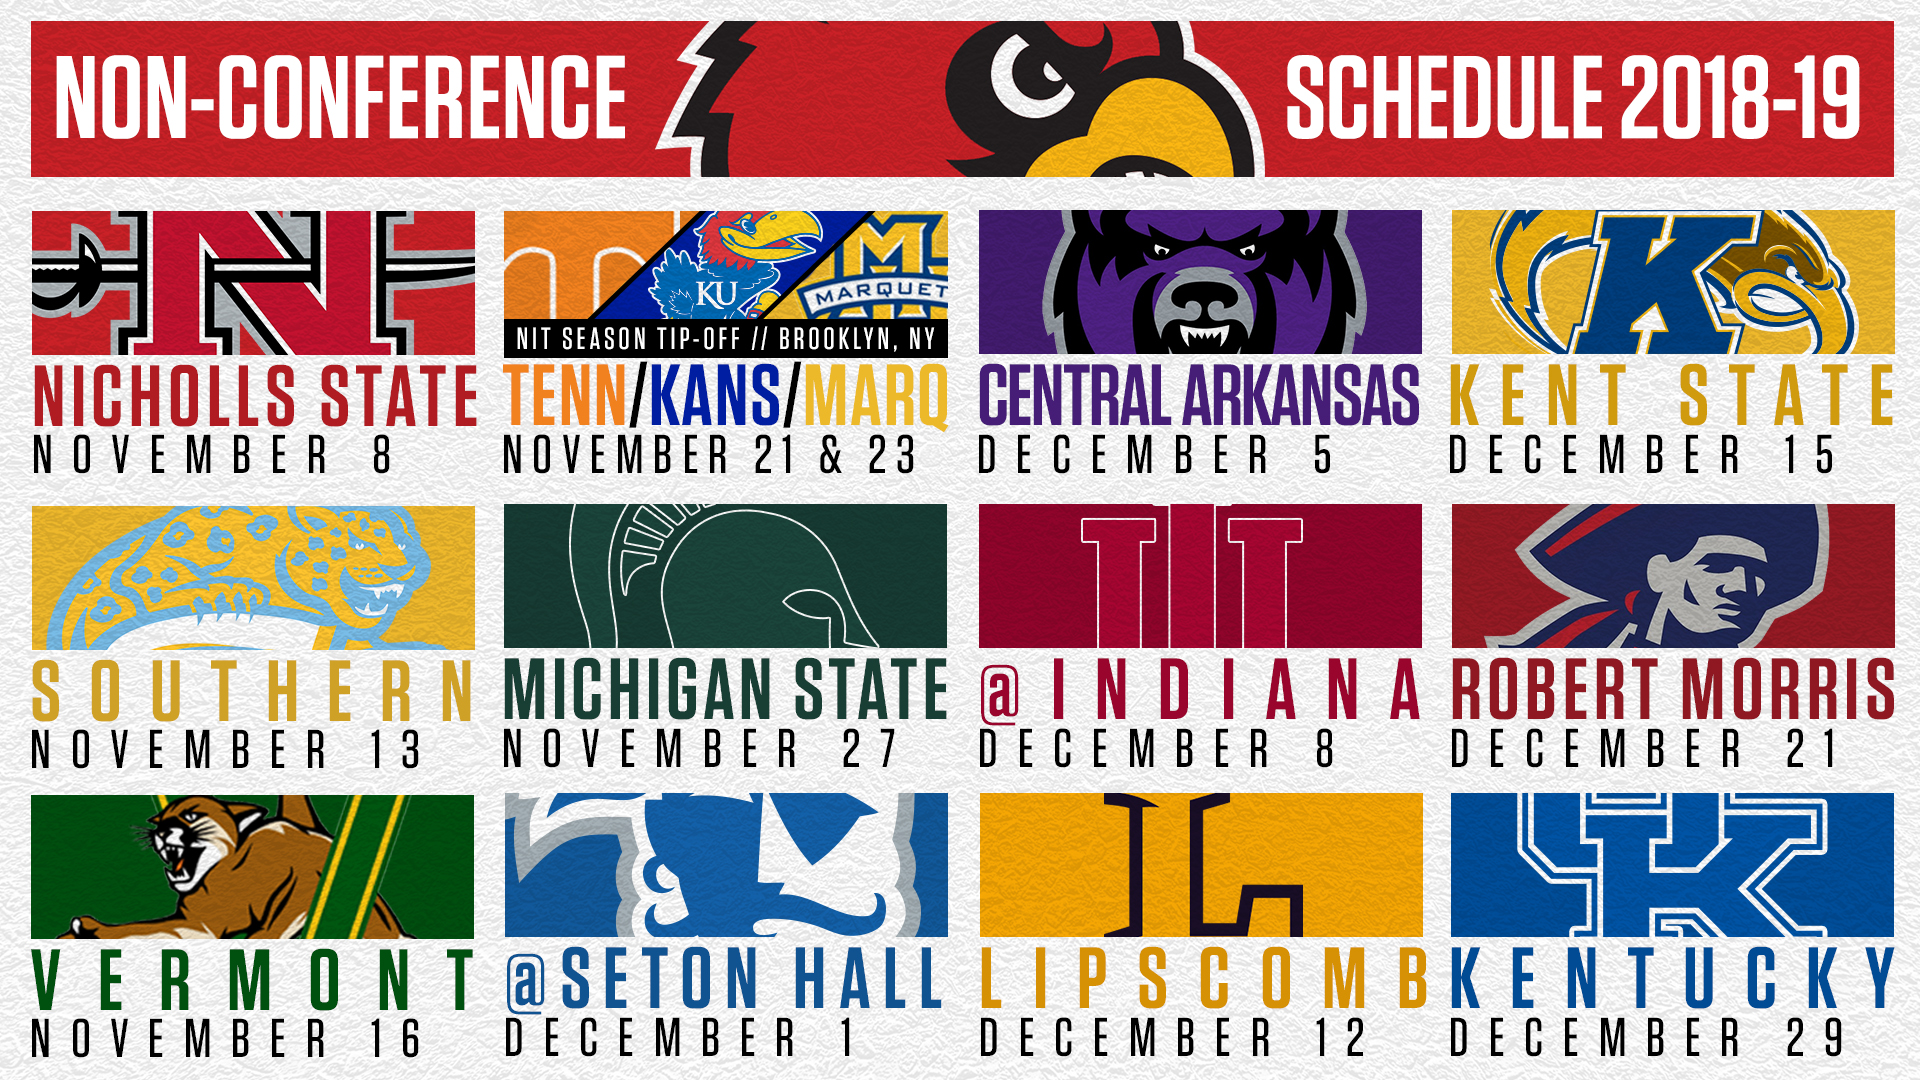 2018-19 non-conference slate provides daunting challenge